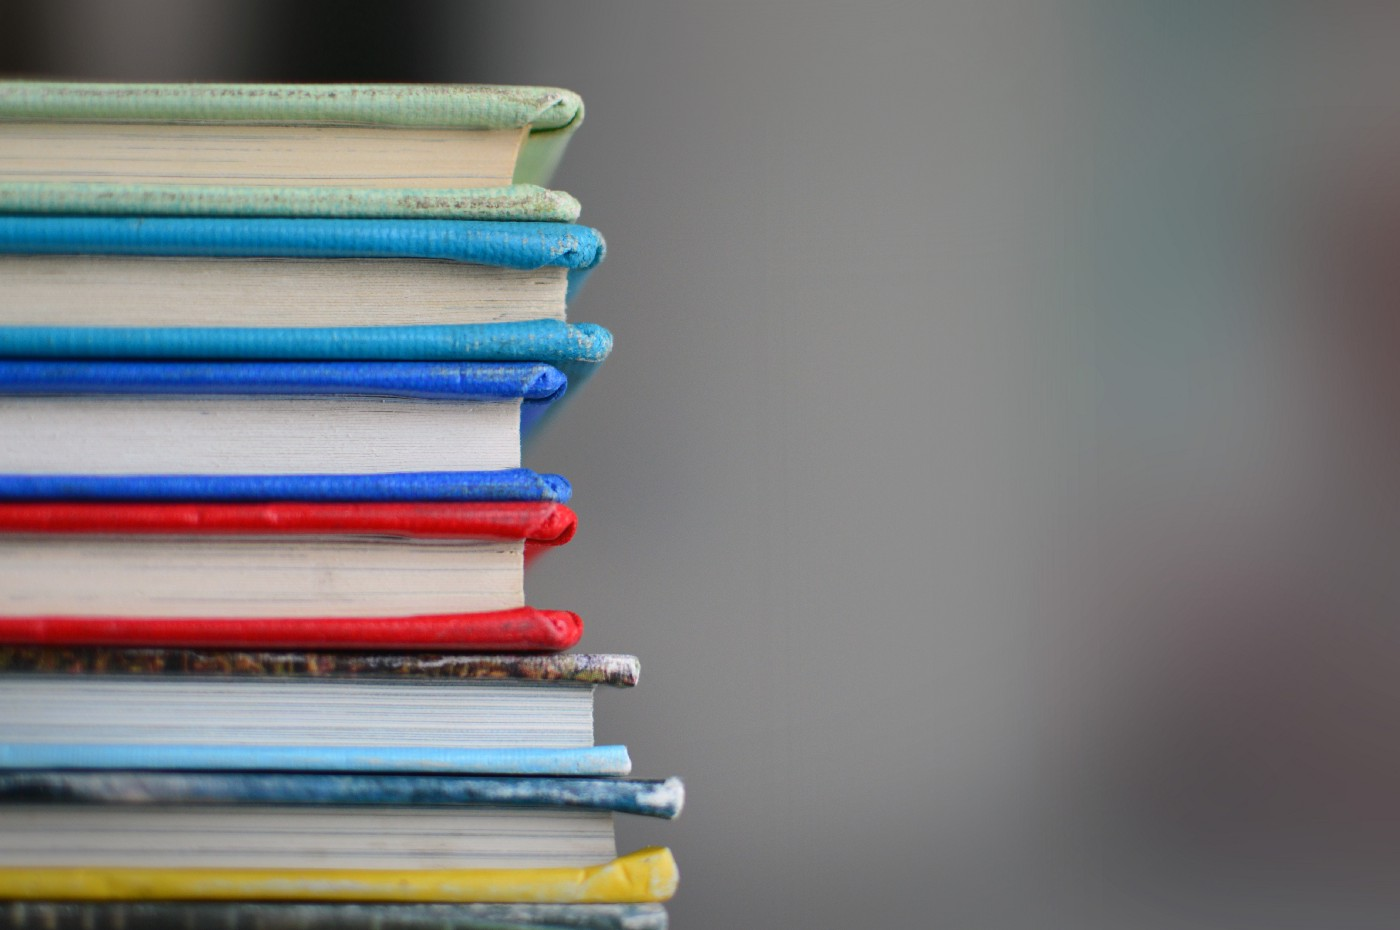 A stack of six books with multi-colored spines and pages showing.